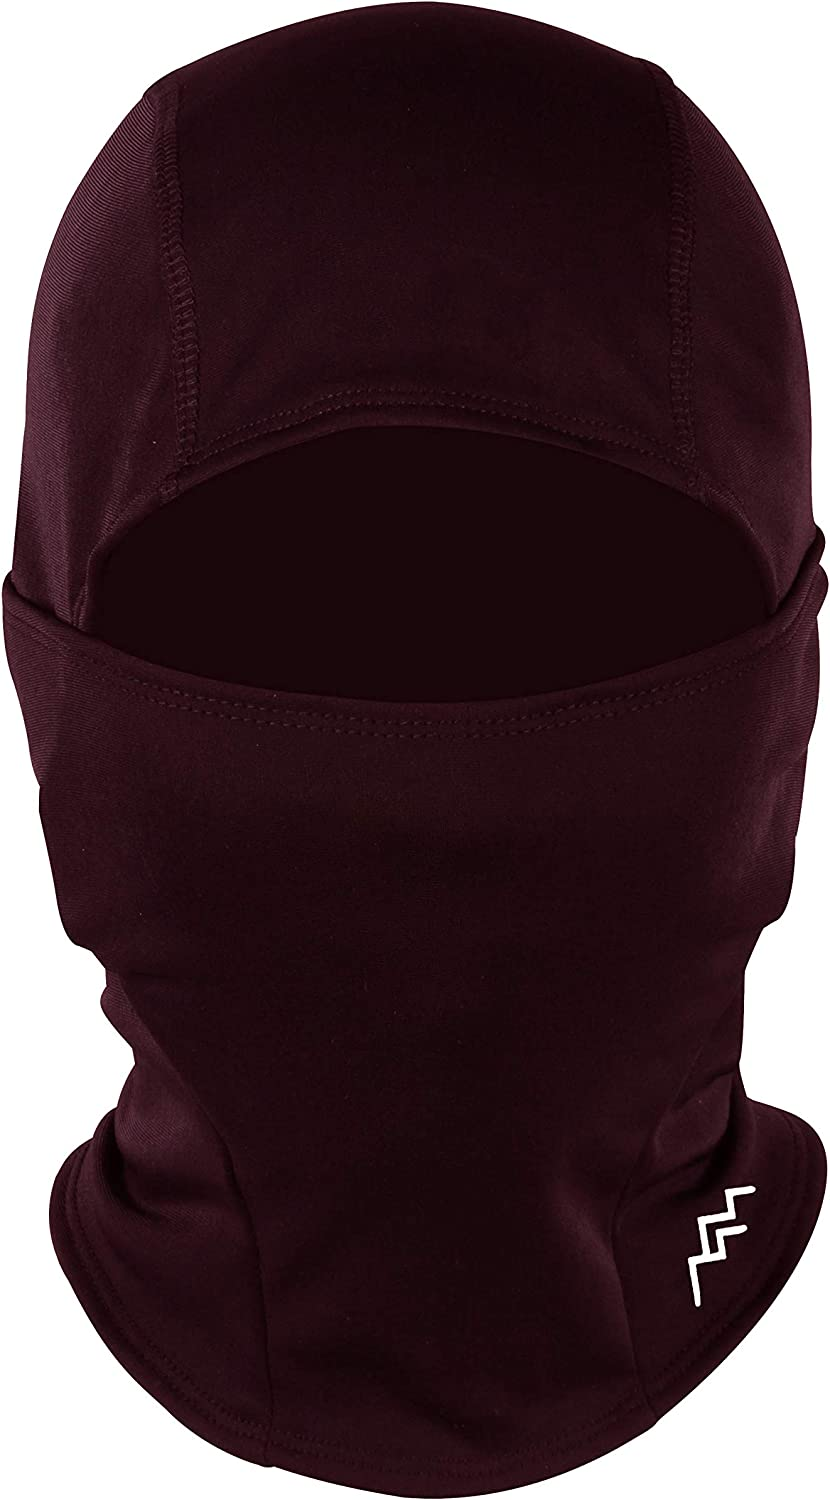 TRAILSIDE SUPPLY CO. Balaclava Windproof Ski Mask Cold Weather Face Mask Motorcycle Cycling Hood